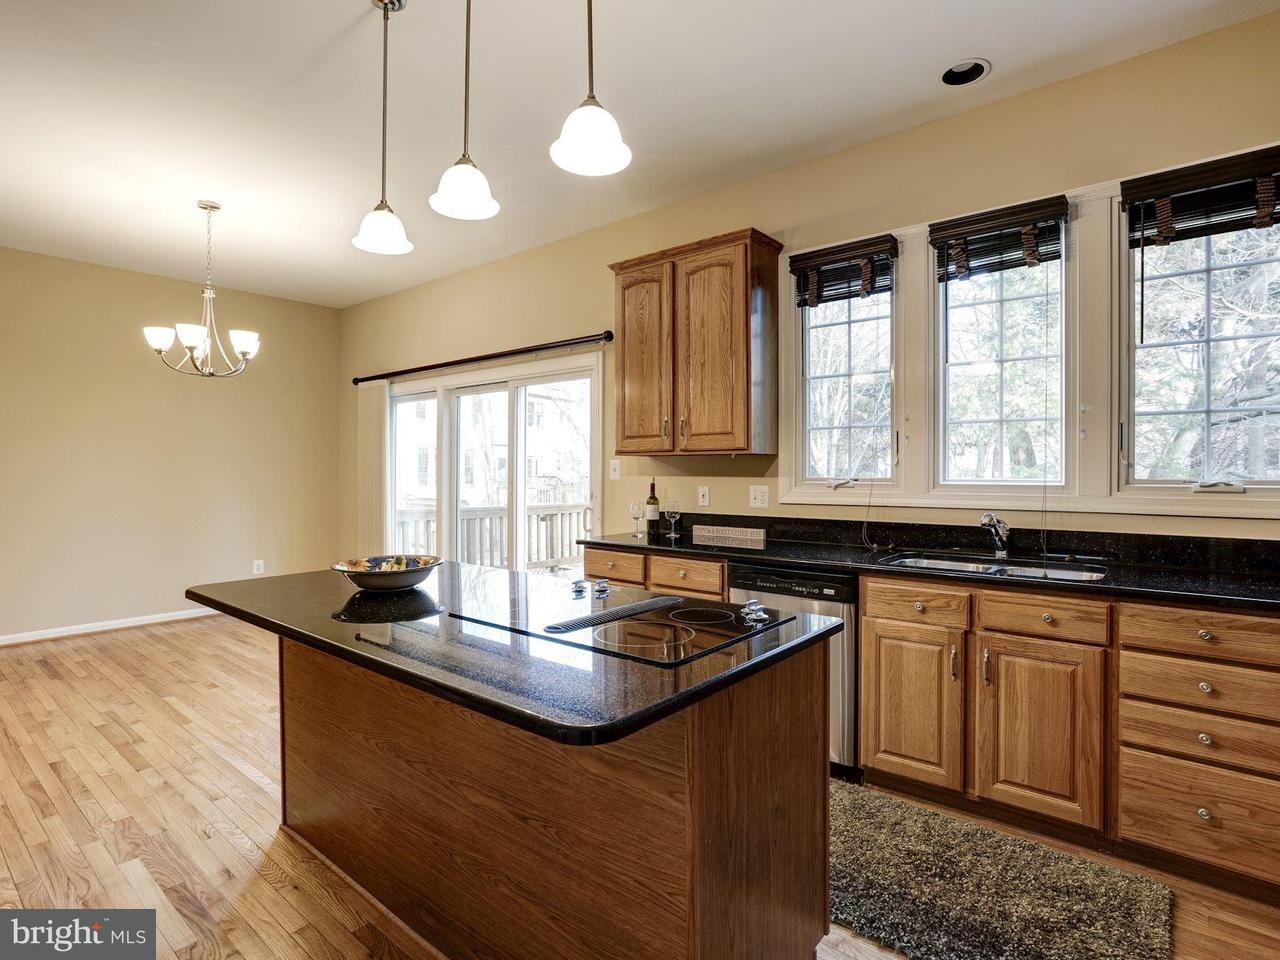 Additional photo for property listing at 10481 Courtney Drive 10481 Courtney Drive Fairfax, Virginia 22030 Estados Unidos